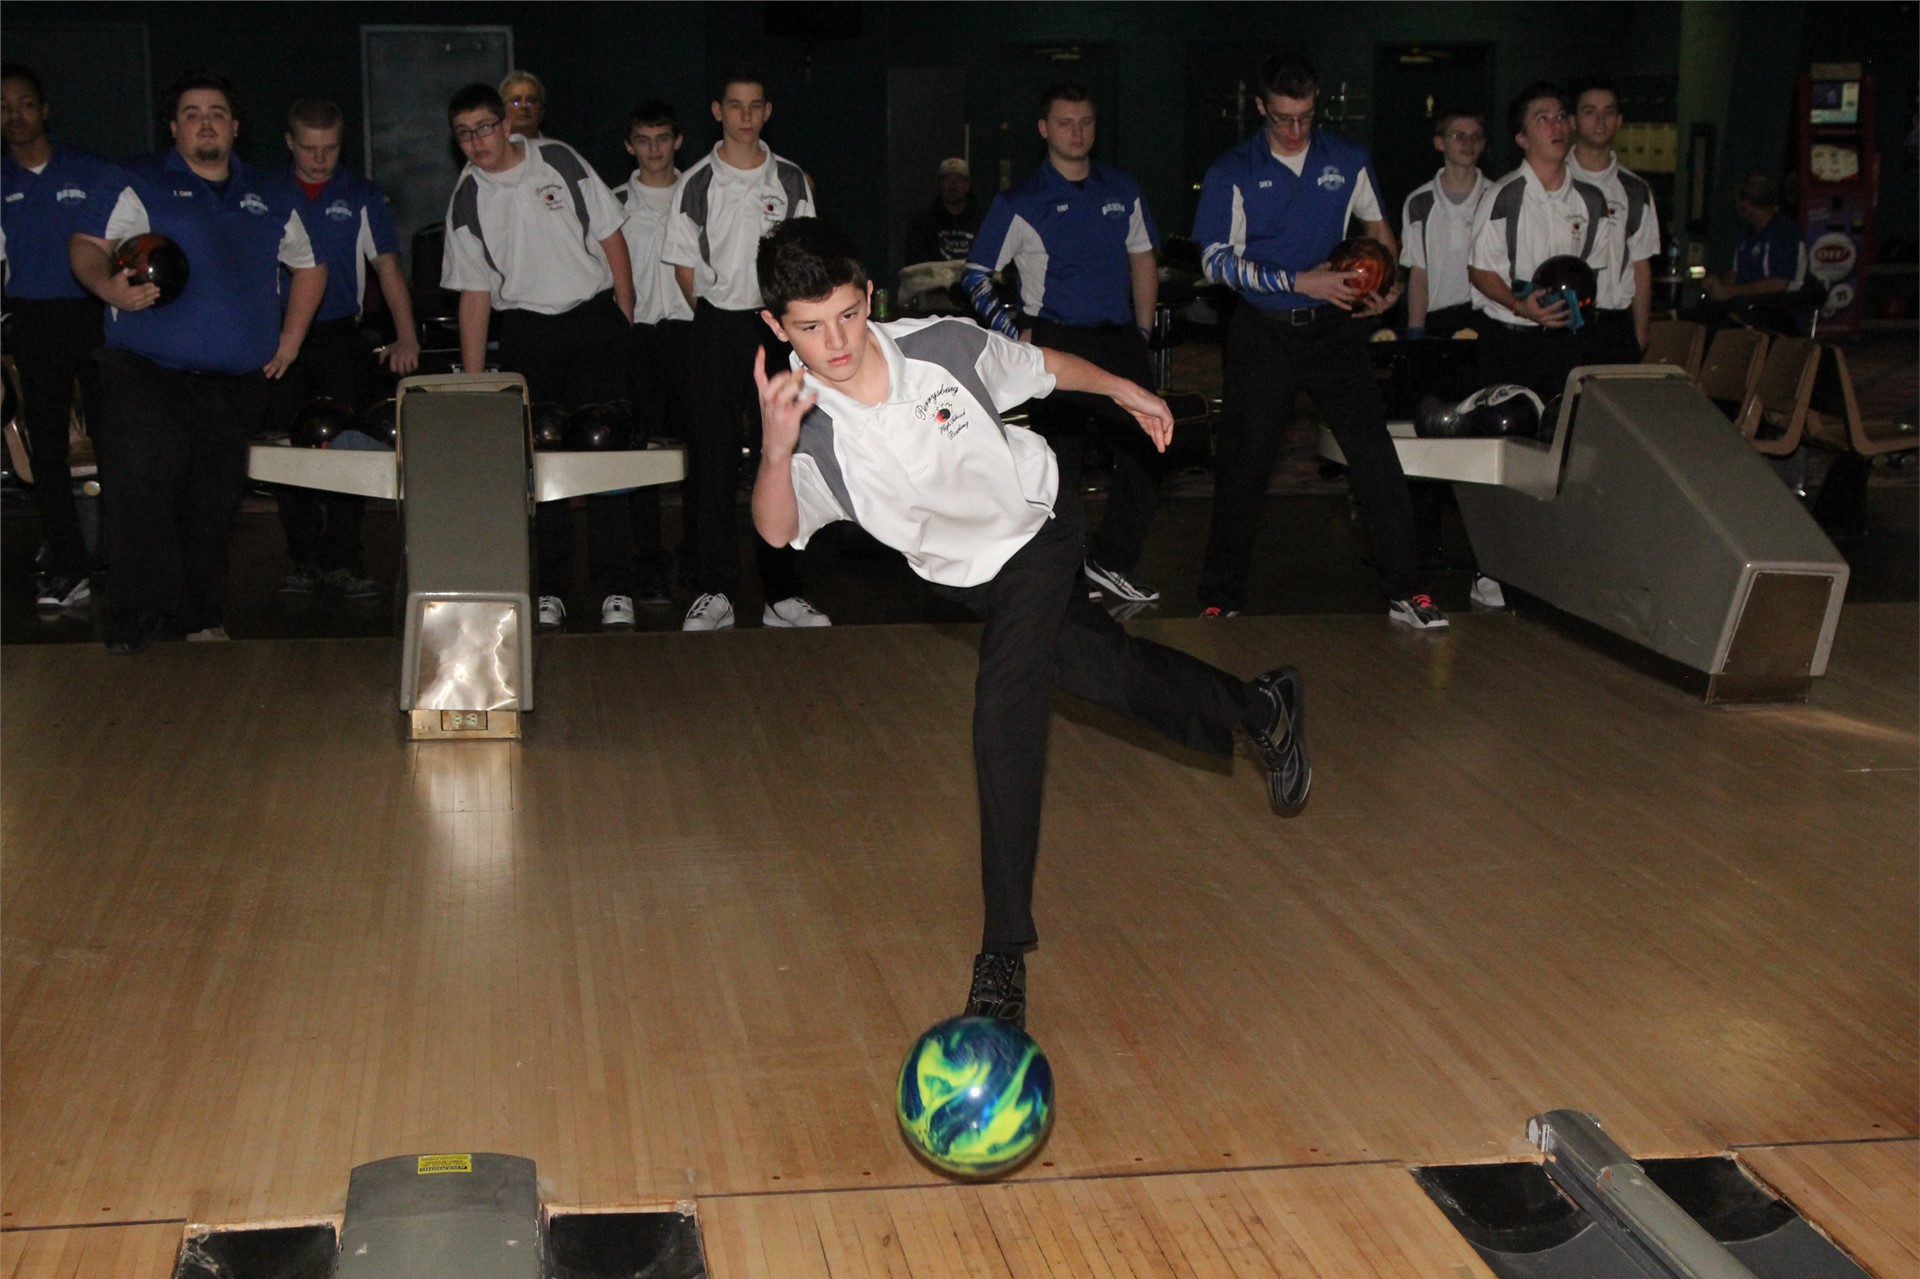 PHS student athlete bowling at a competition